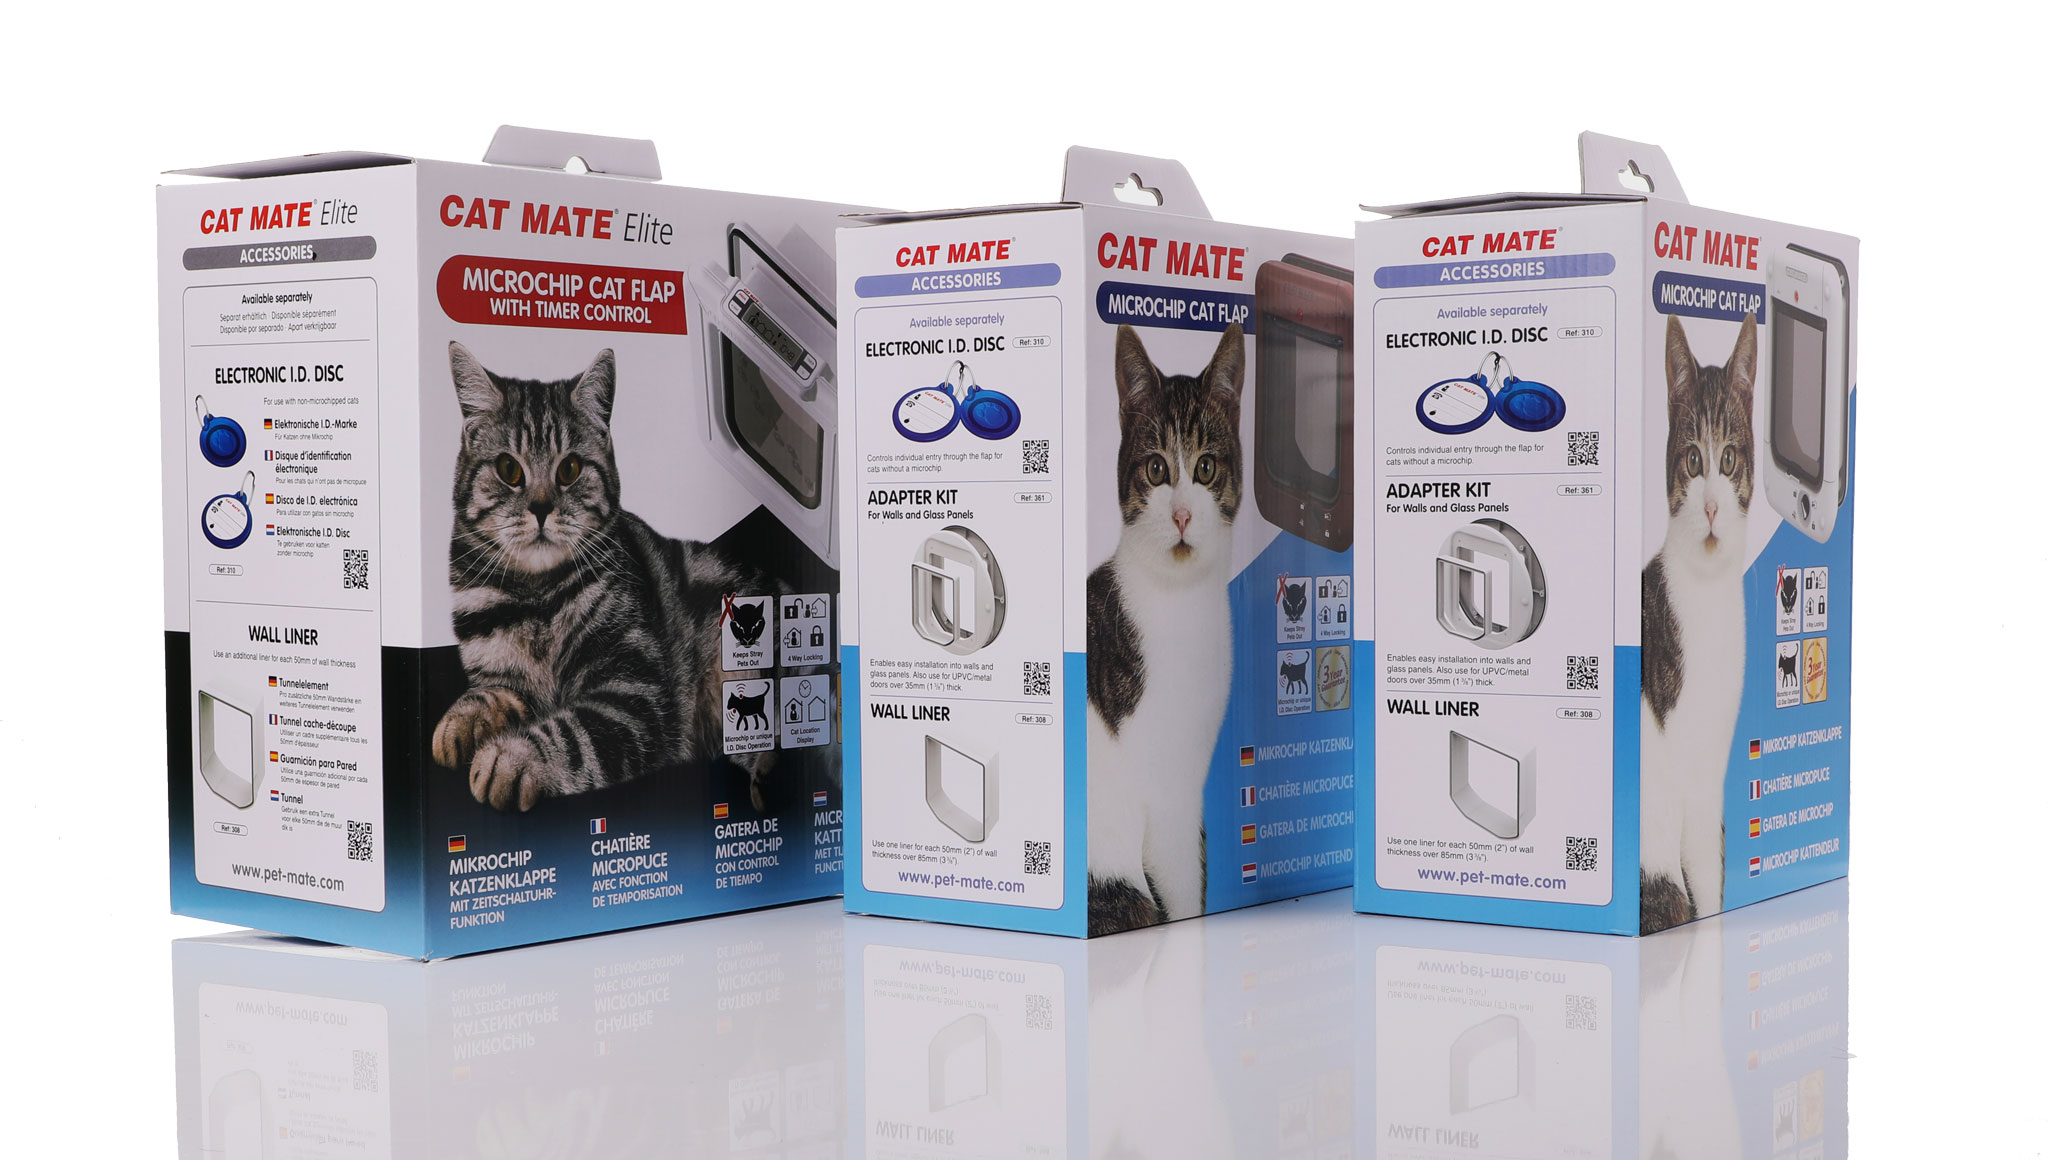 Microchip operated cat doors from Cat mate